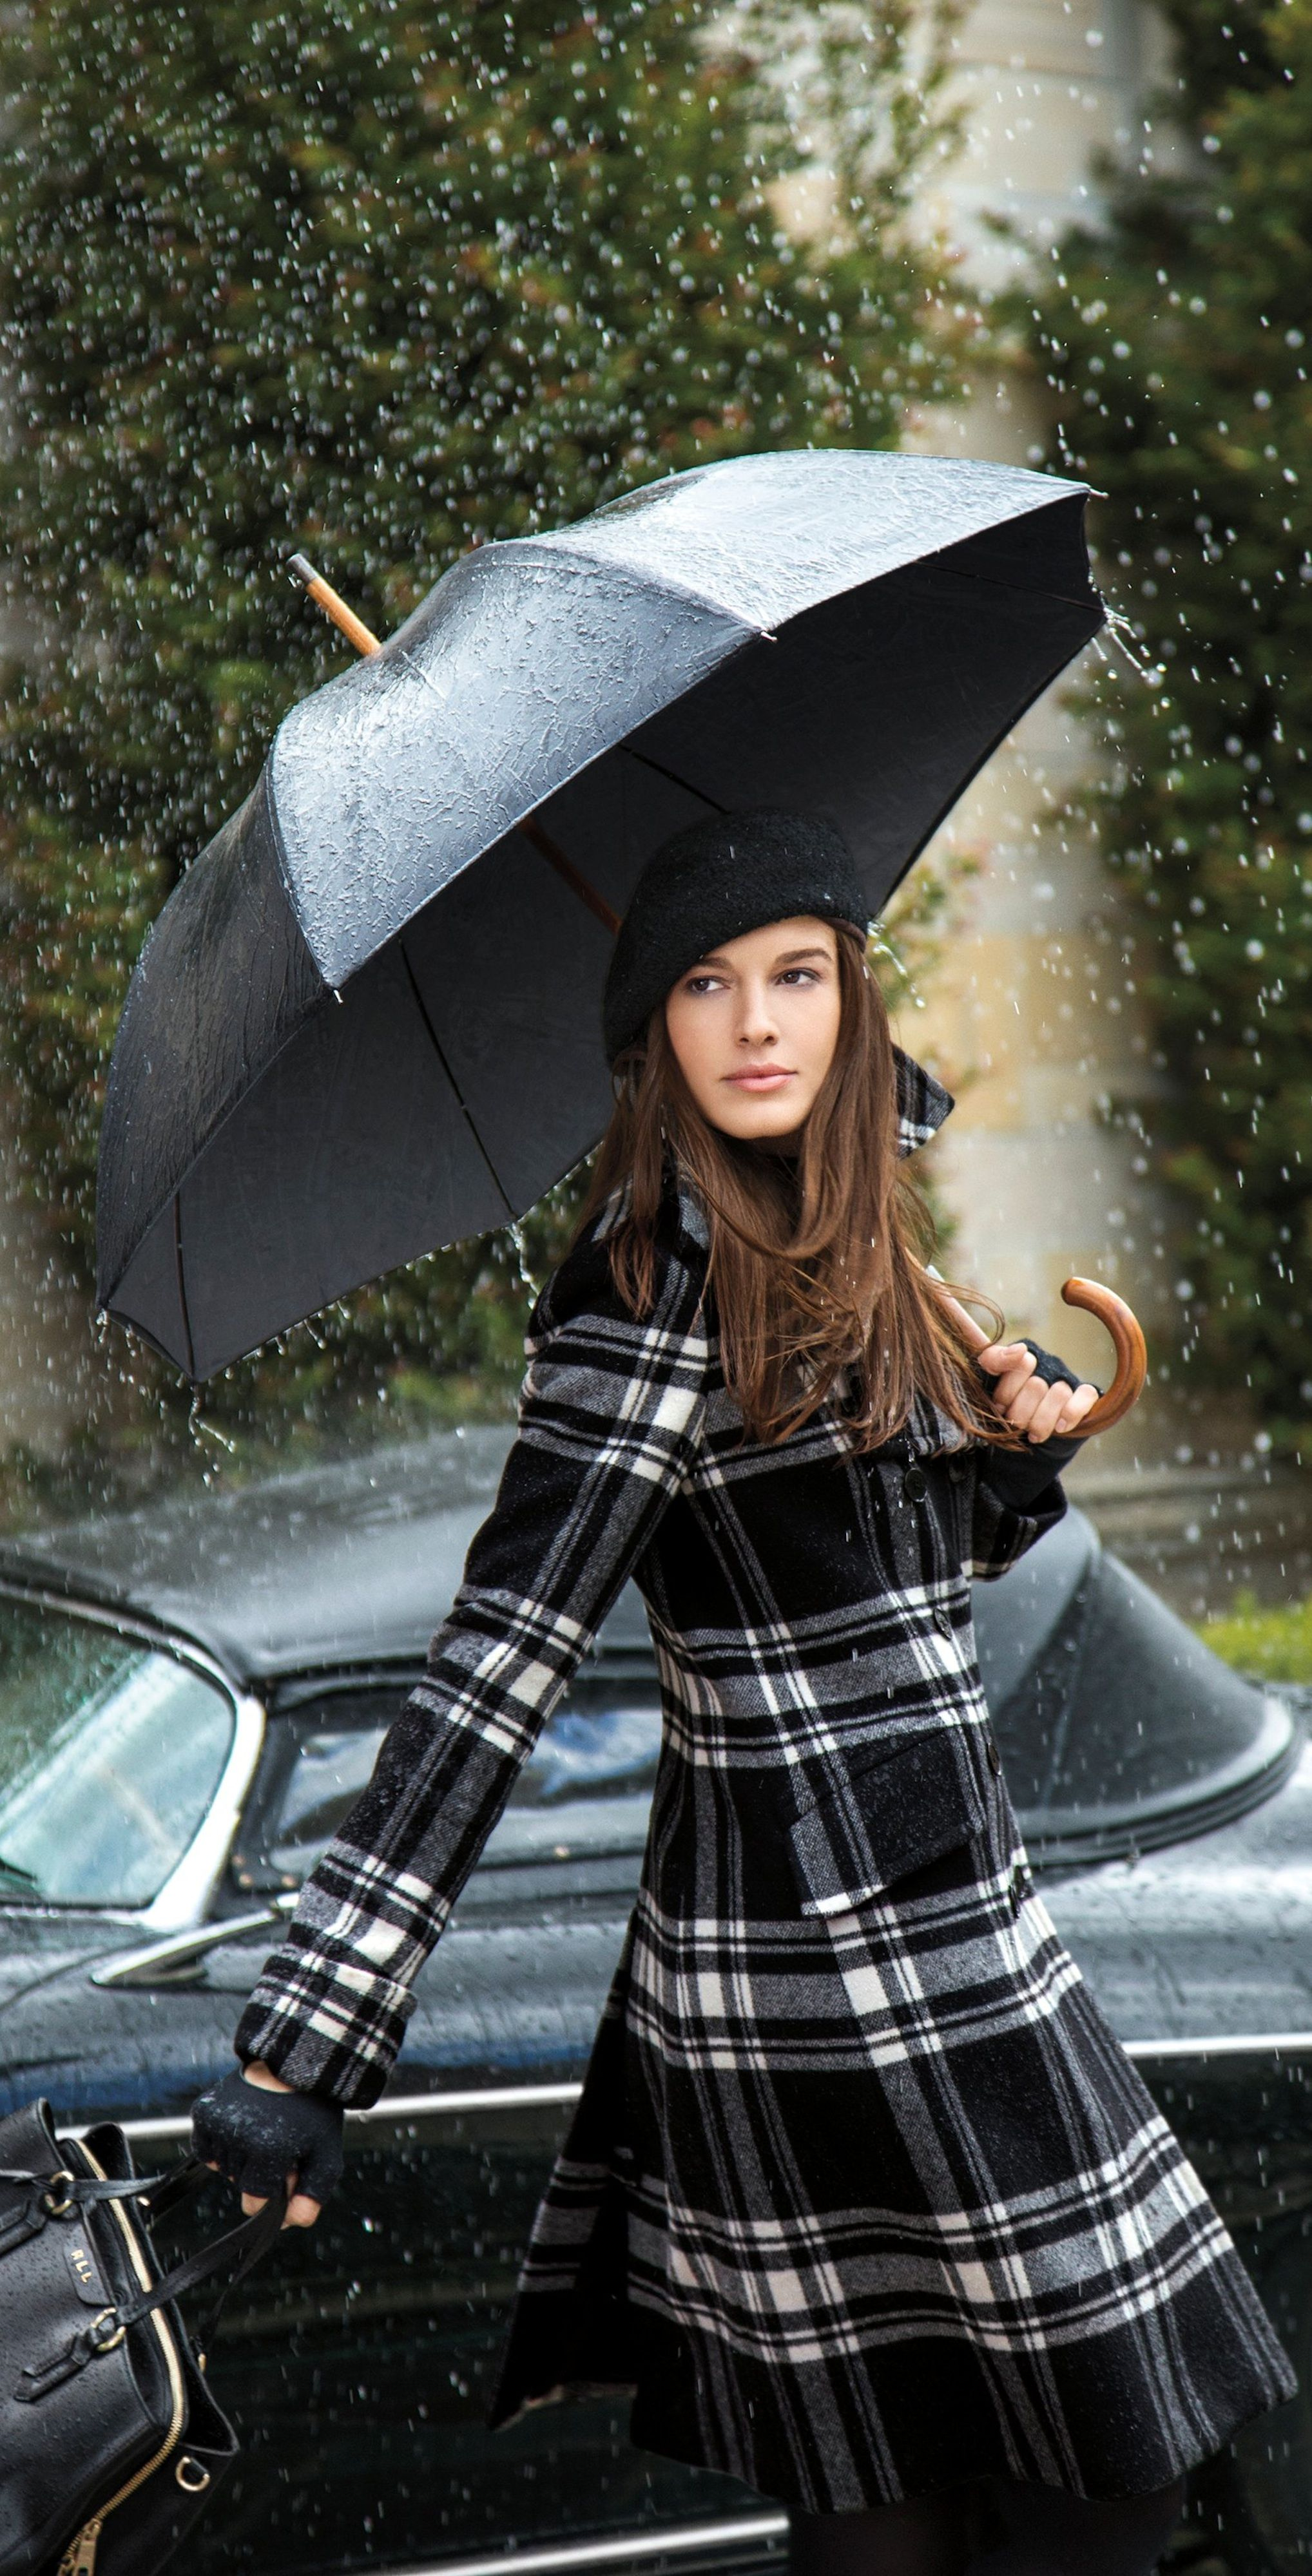 Update your look with Lauren Ralph Lauren classics in sleek shades of black, white and grey. This warm coat is crafted from an ultra-soft wool blend and features a preppy plaid pattern with a  classic double-breasted silhouette